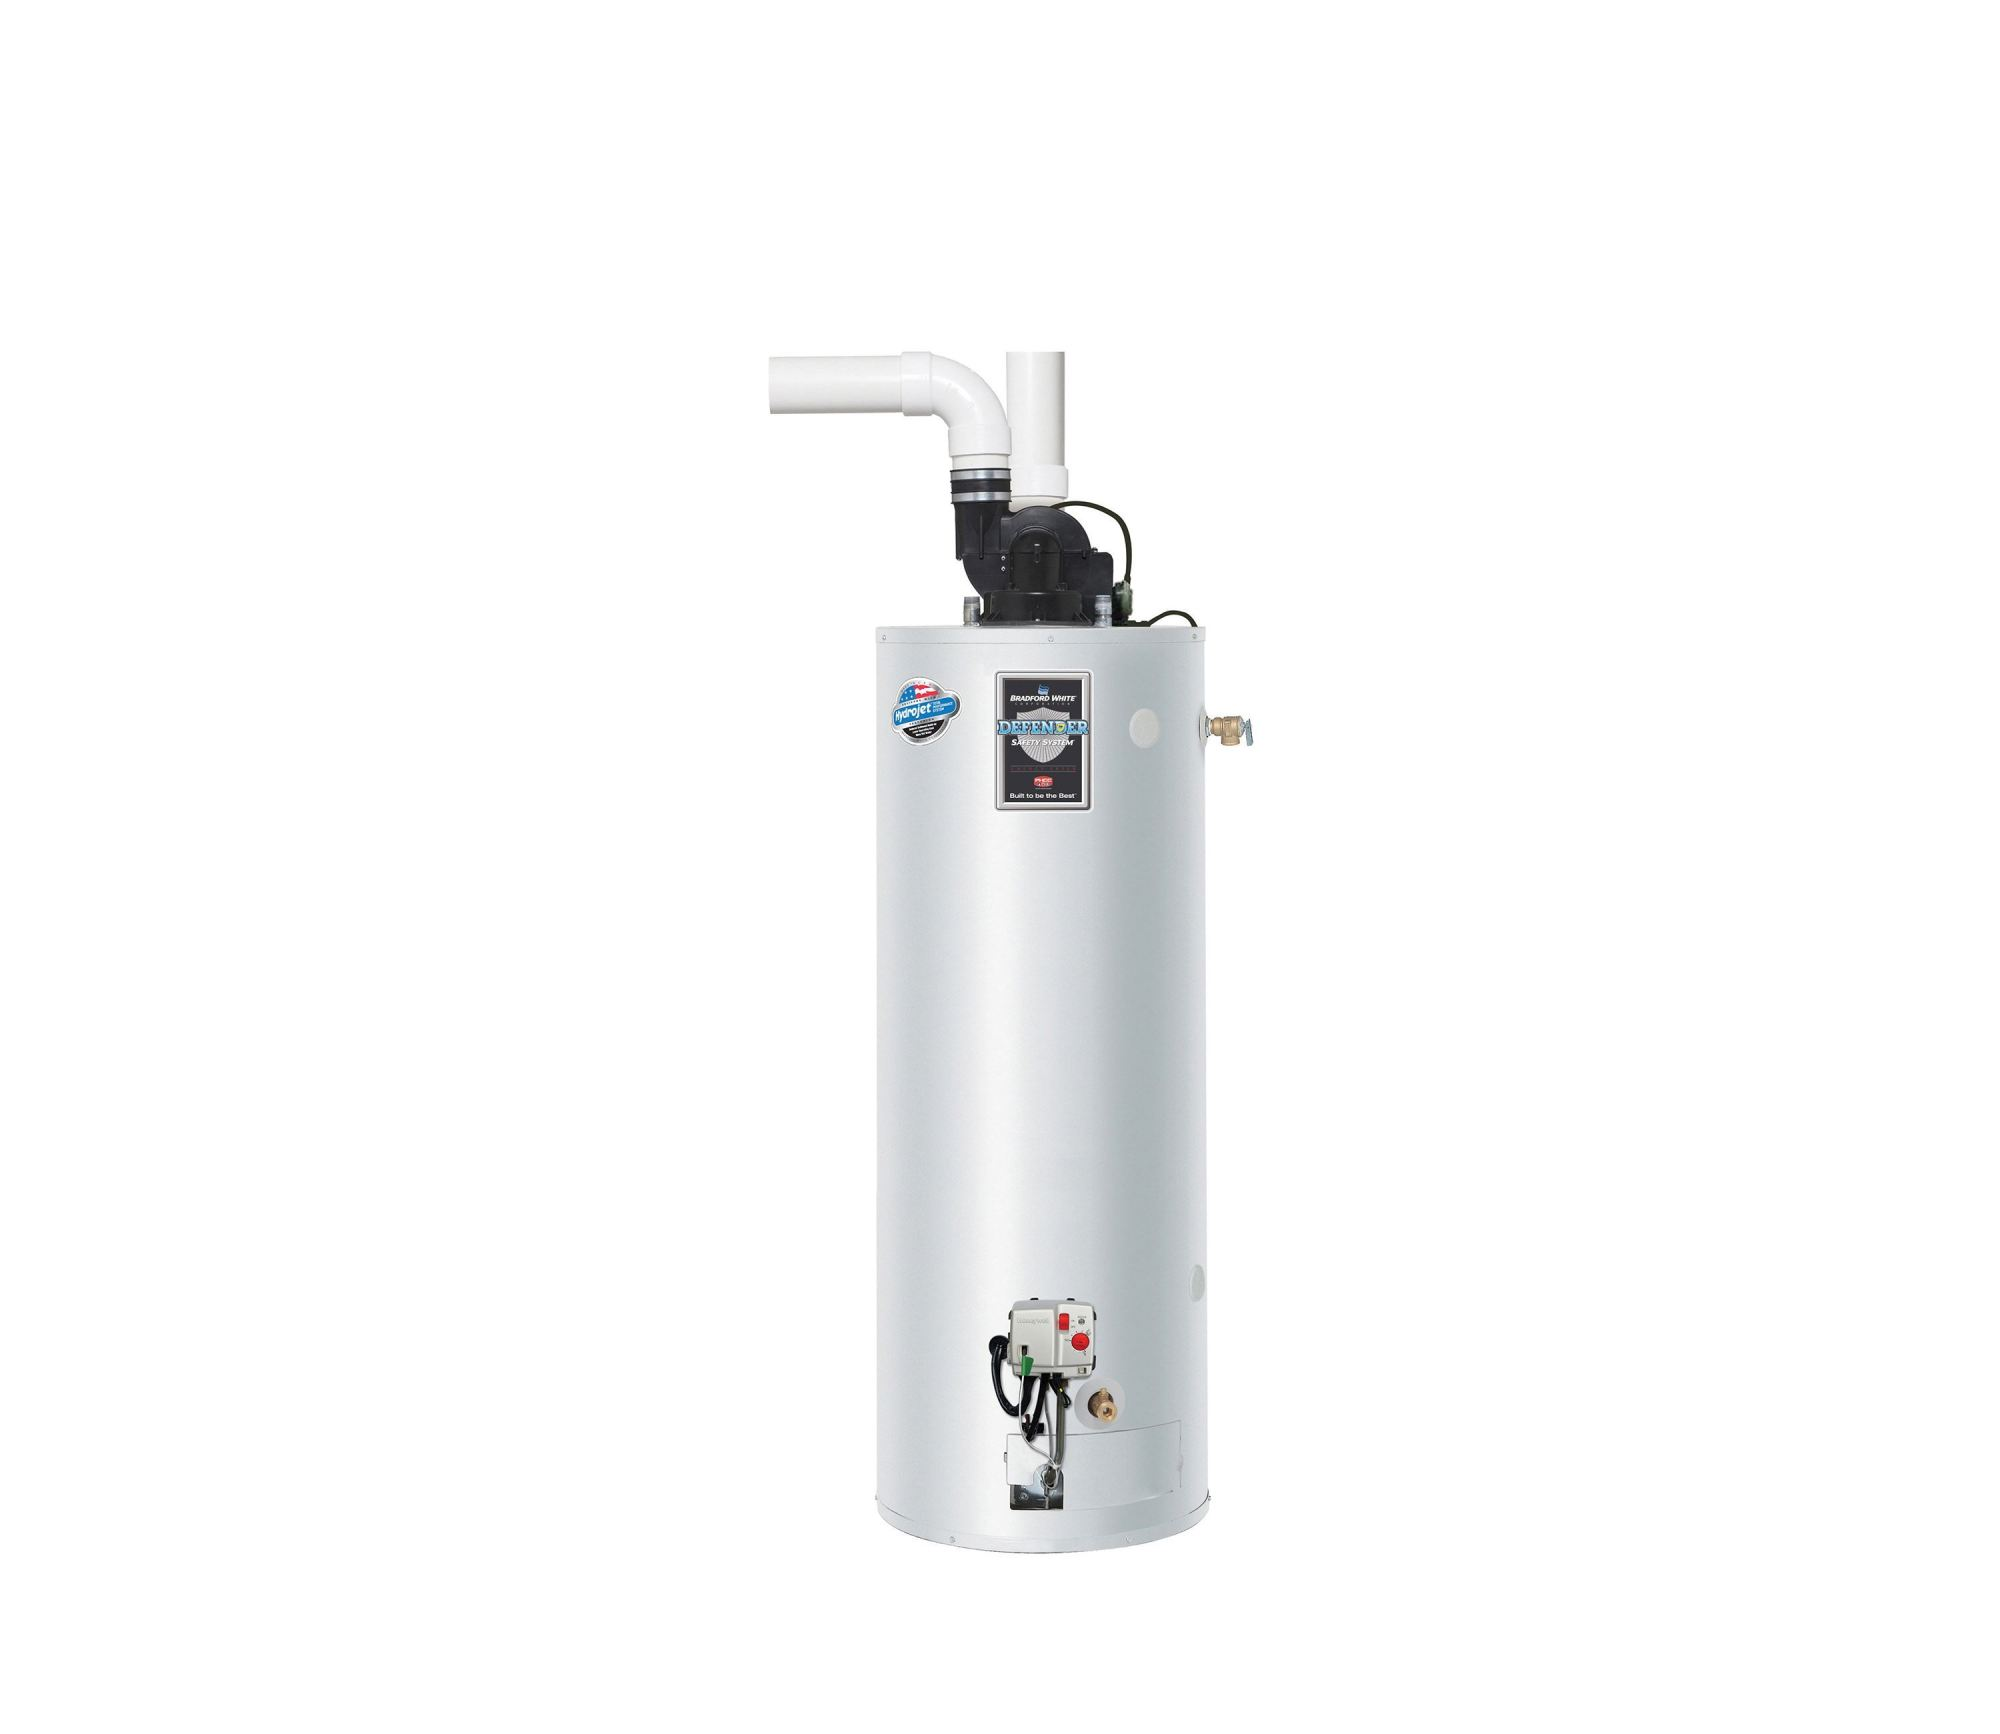 hight resolution of bradford white rg2pdv50h6n 48 gal high efficiency power direct vent natural gas water heater 60k